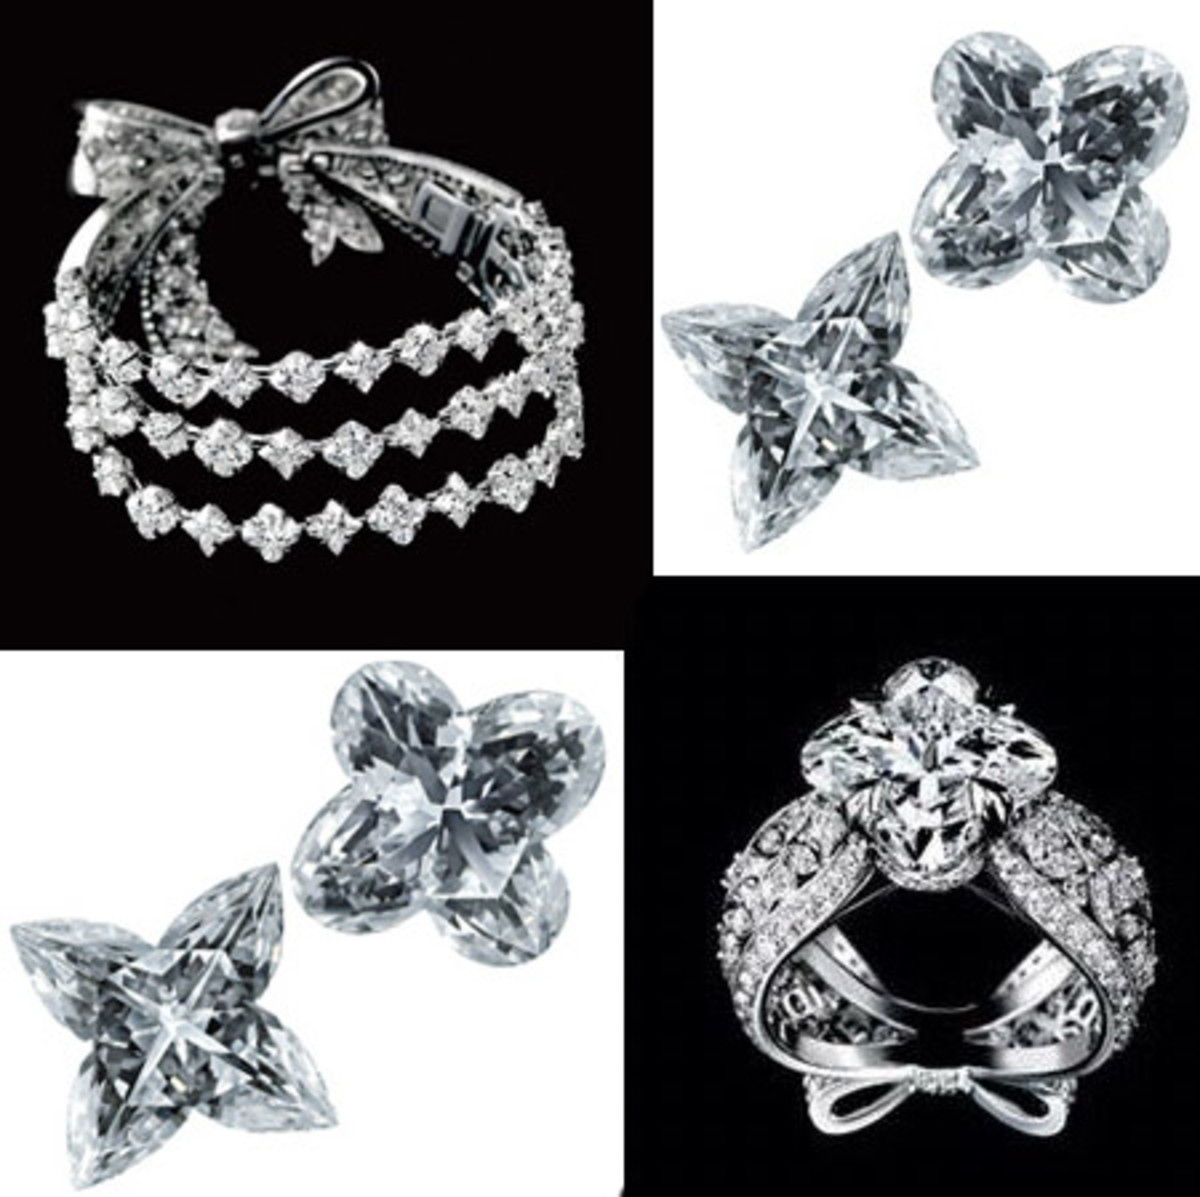 Exquisite flower monogram diamonds by Louis Vuitton - Les Ardentes Collection from stylefrizz.com